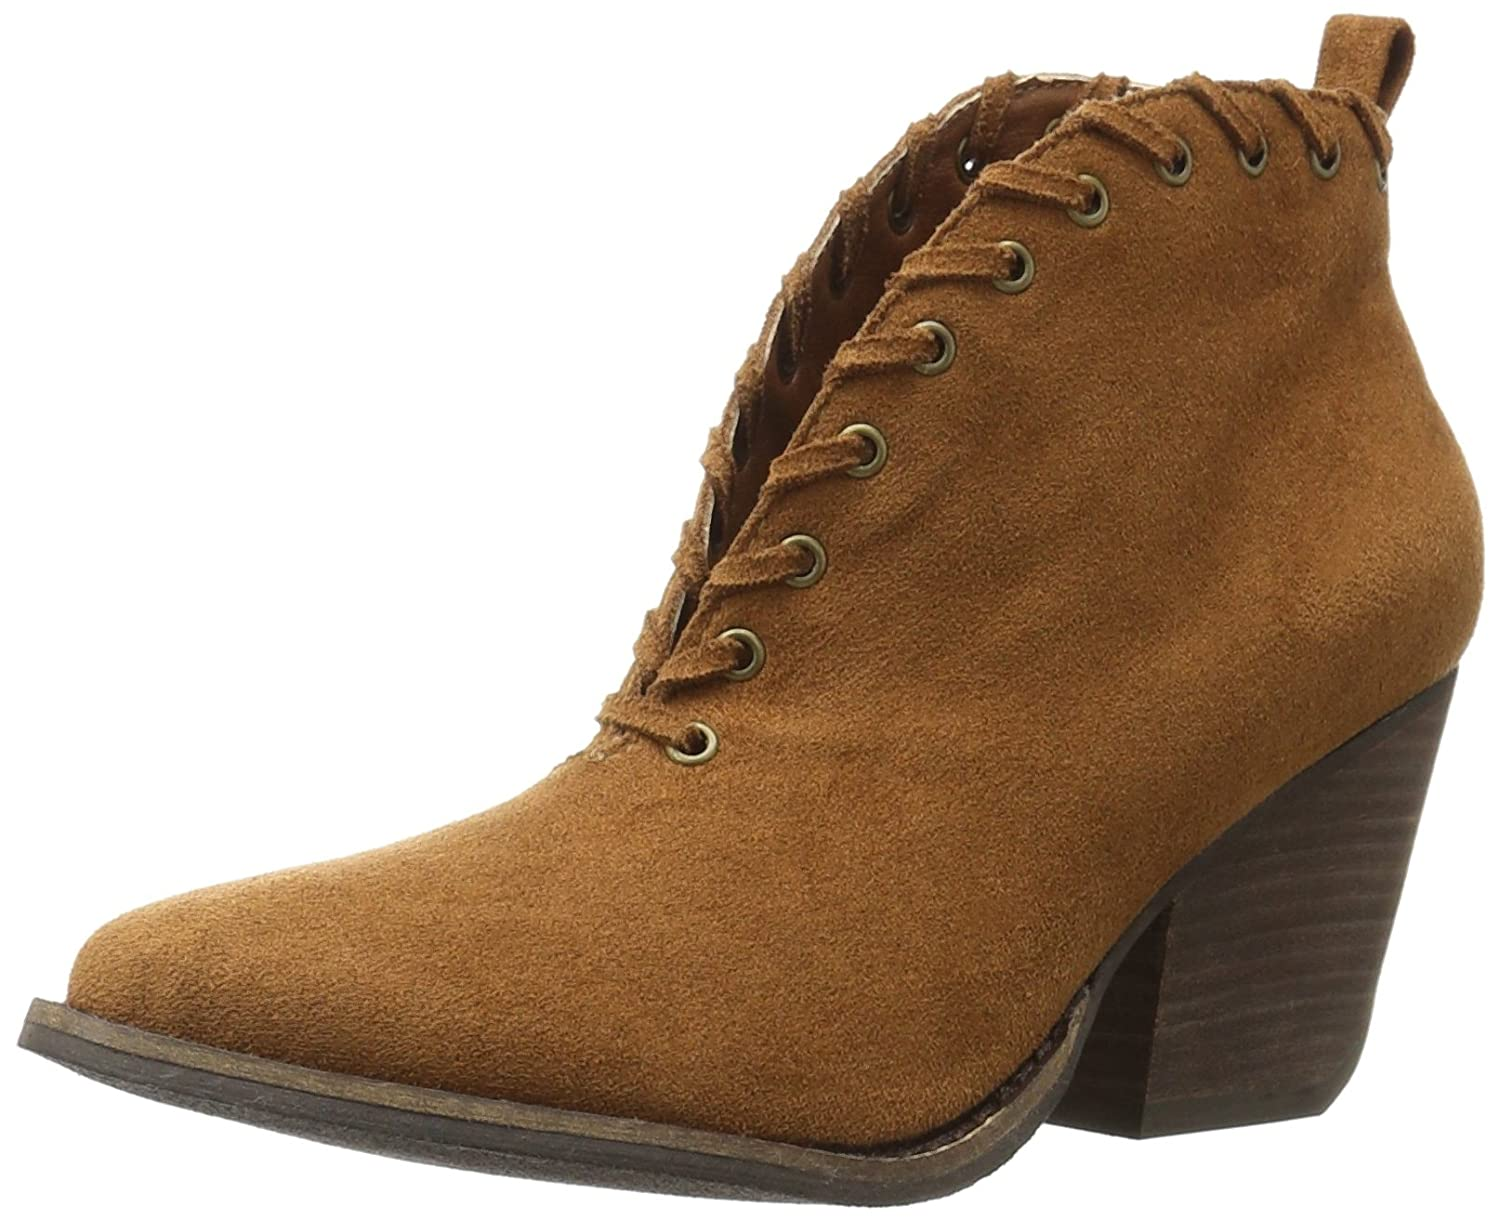 Coconuts by Matisse Women's Alabama Ankle Bootie B01D9TWEGG 6.5 B(M) US|Saddle